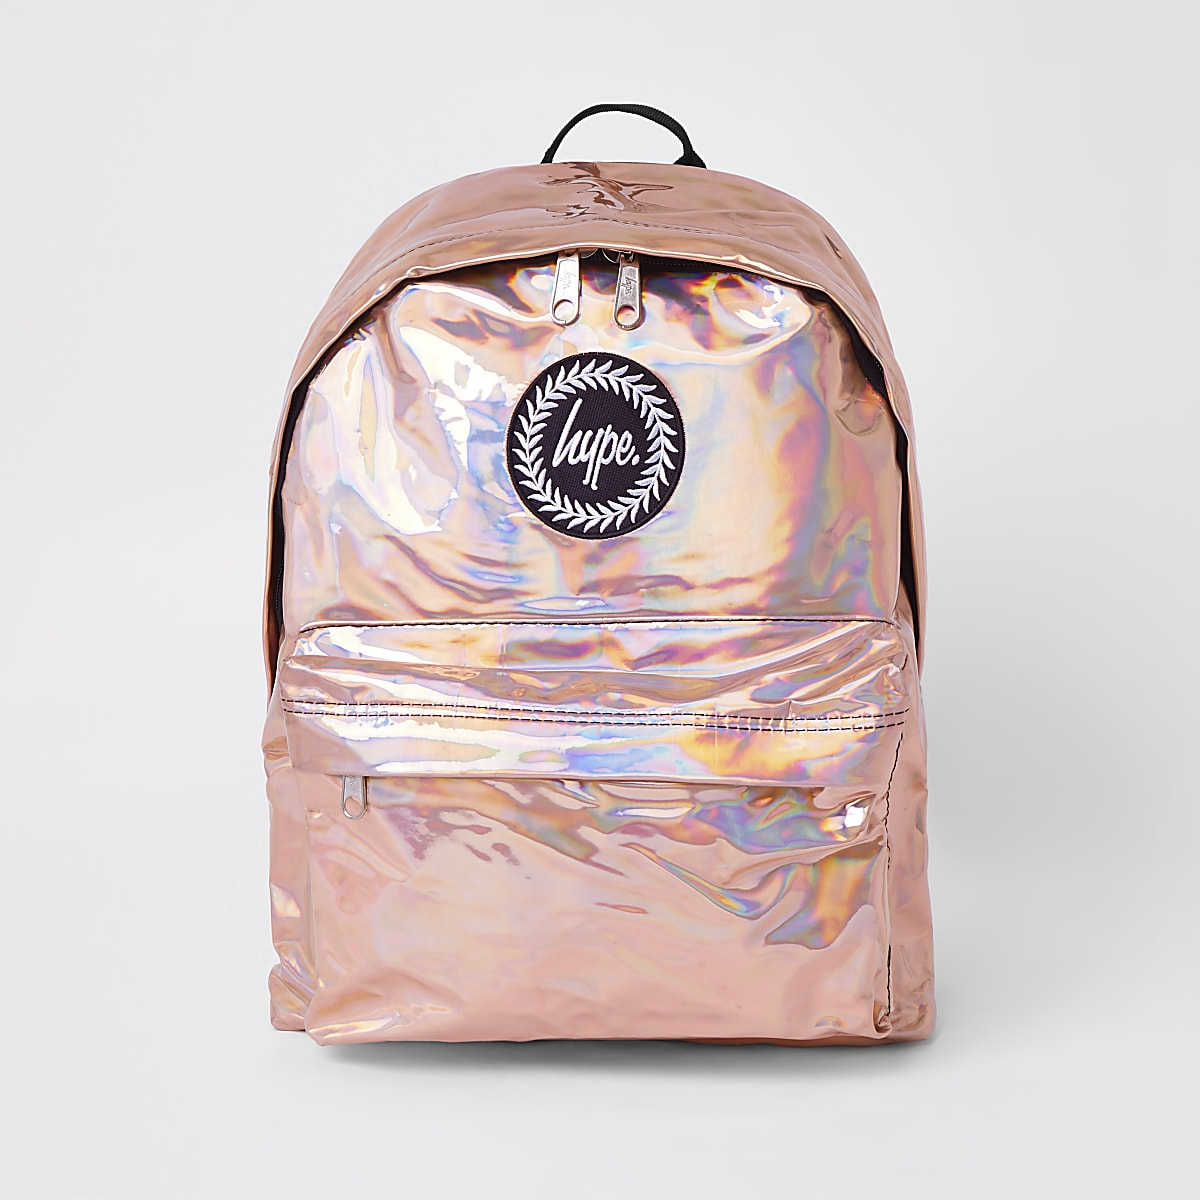 Girls Hype rose gold mirrored backpack